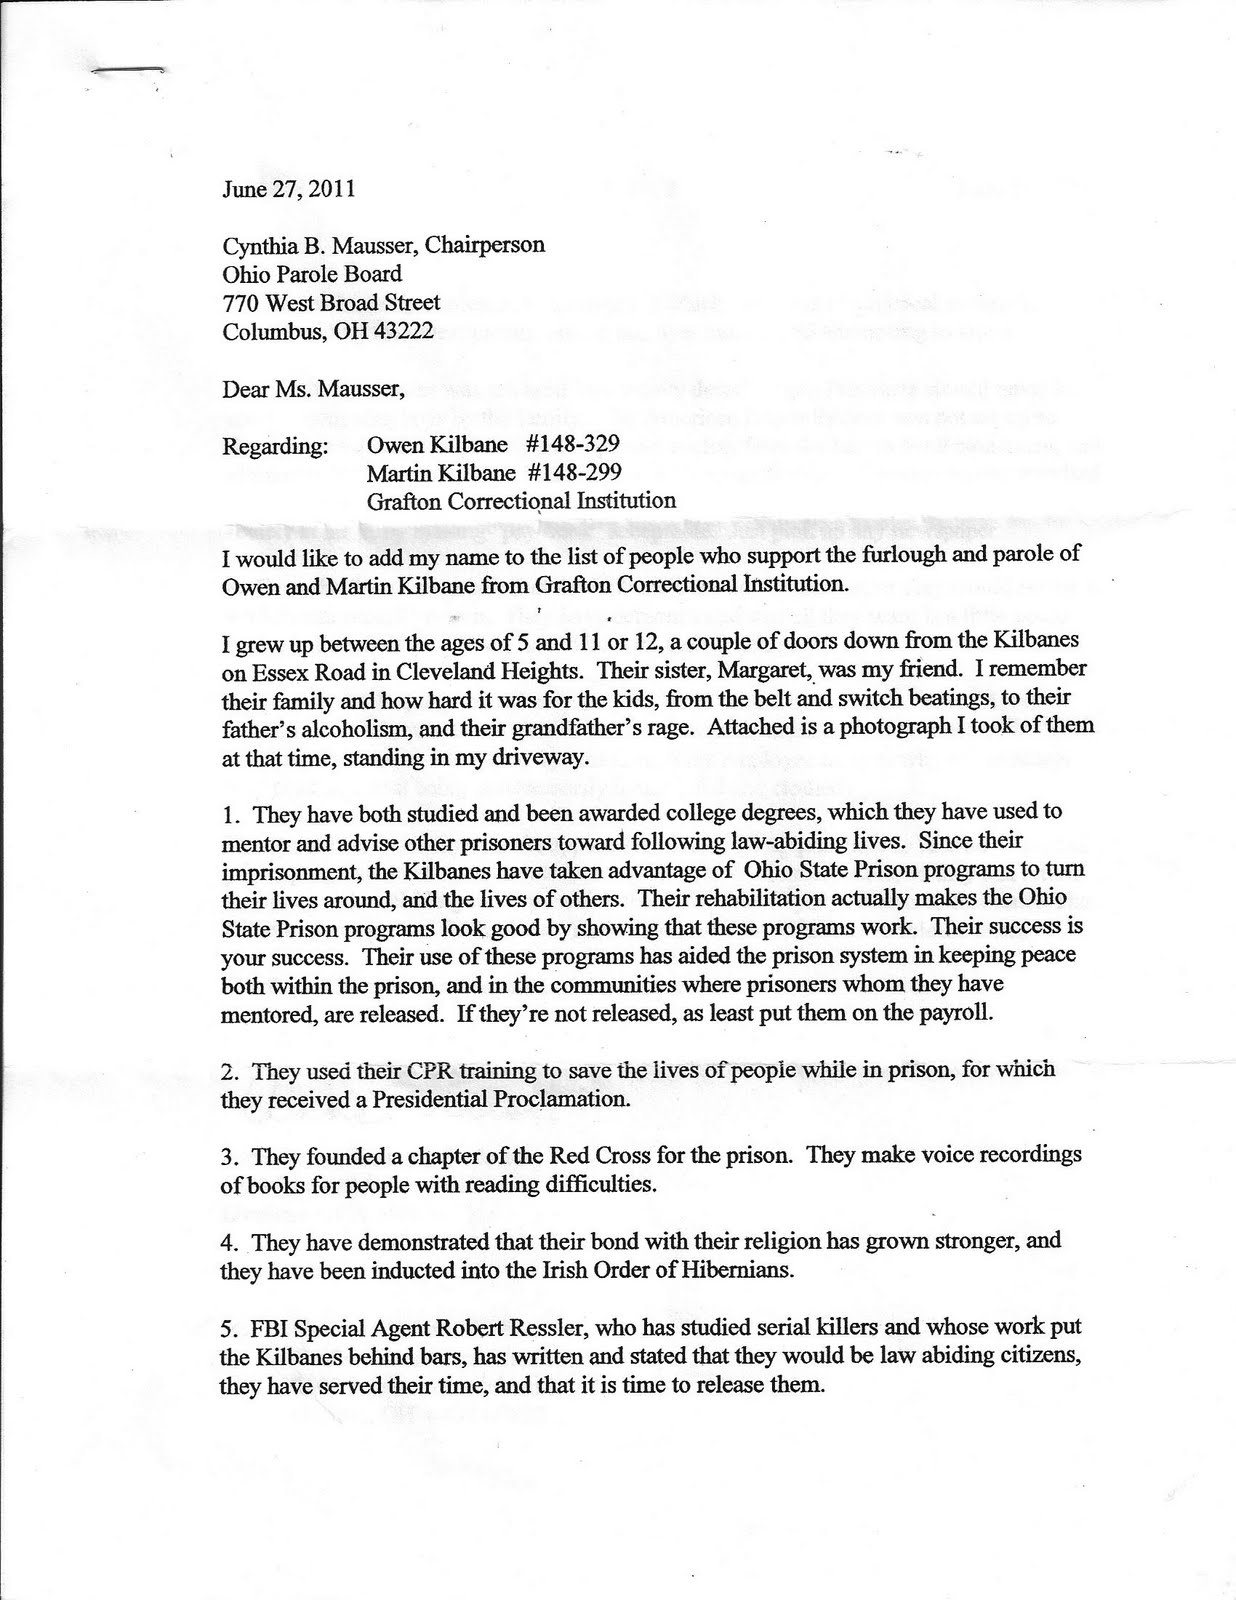 Sample Letter To Parole Board From Inmate from 2.bp.blogspot.com